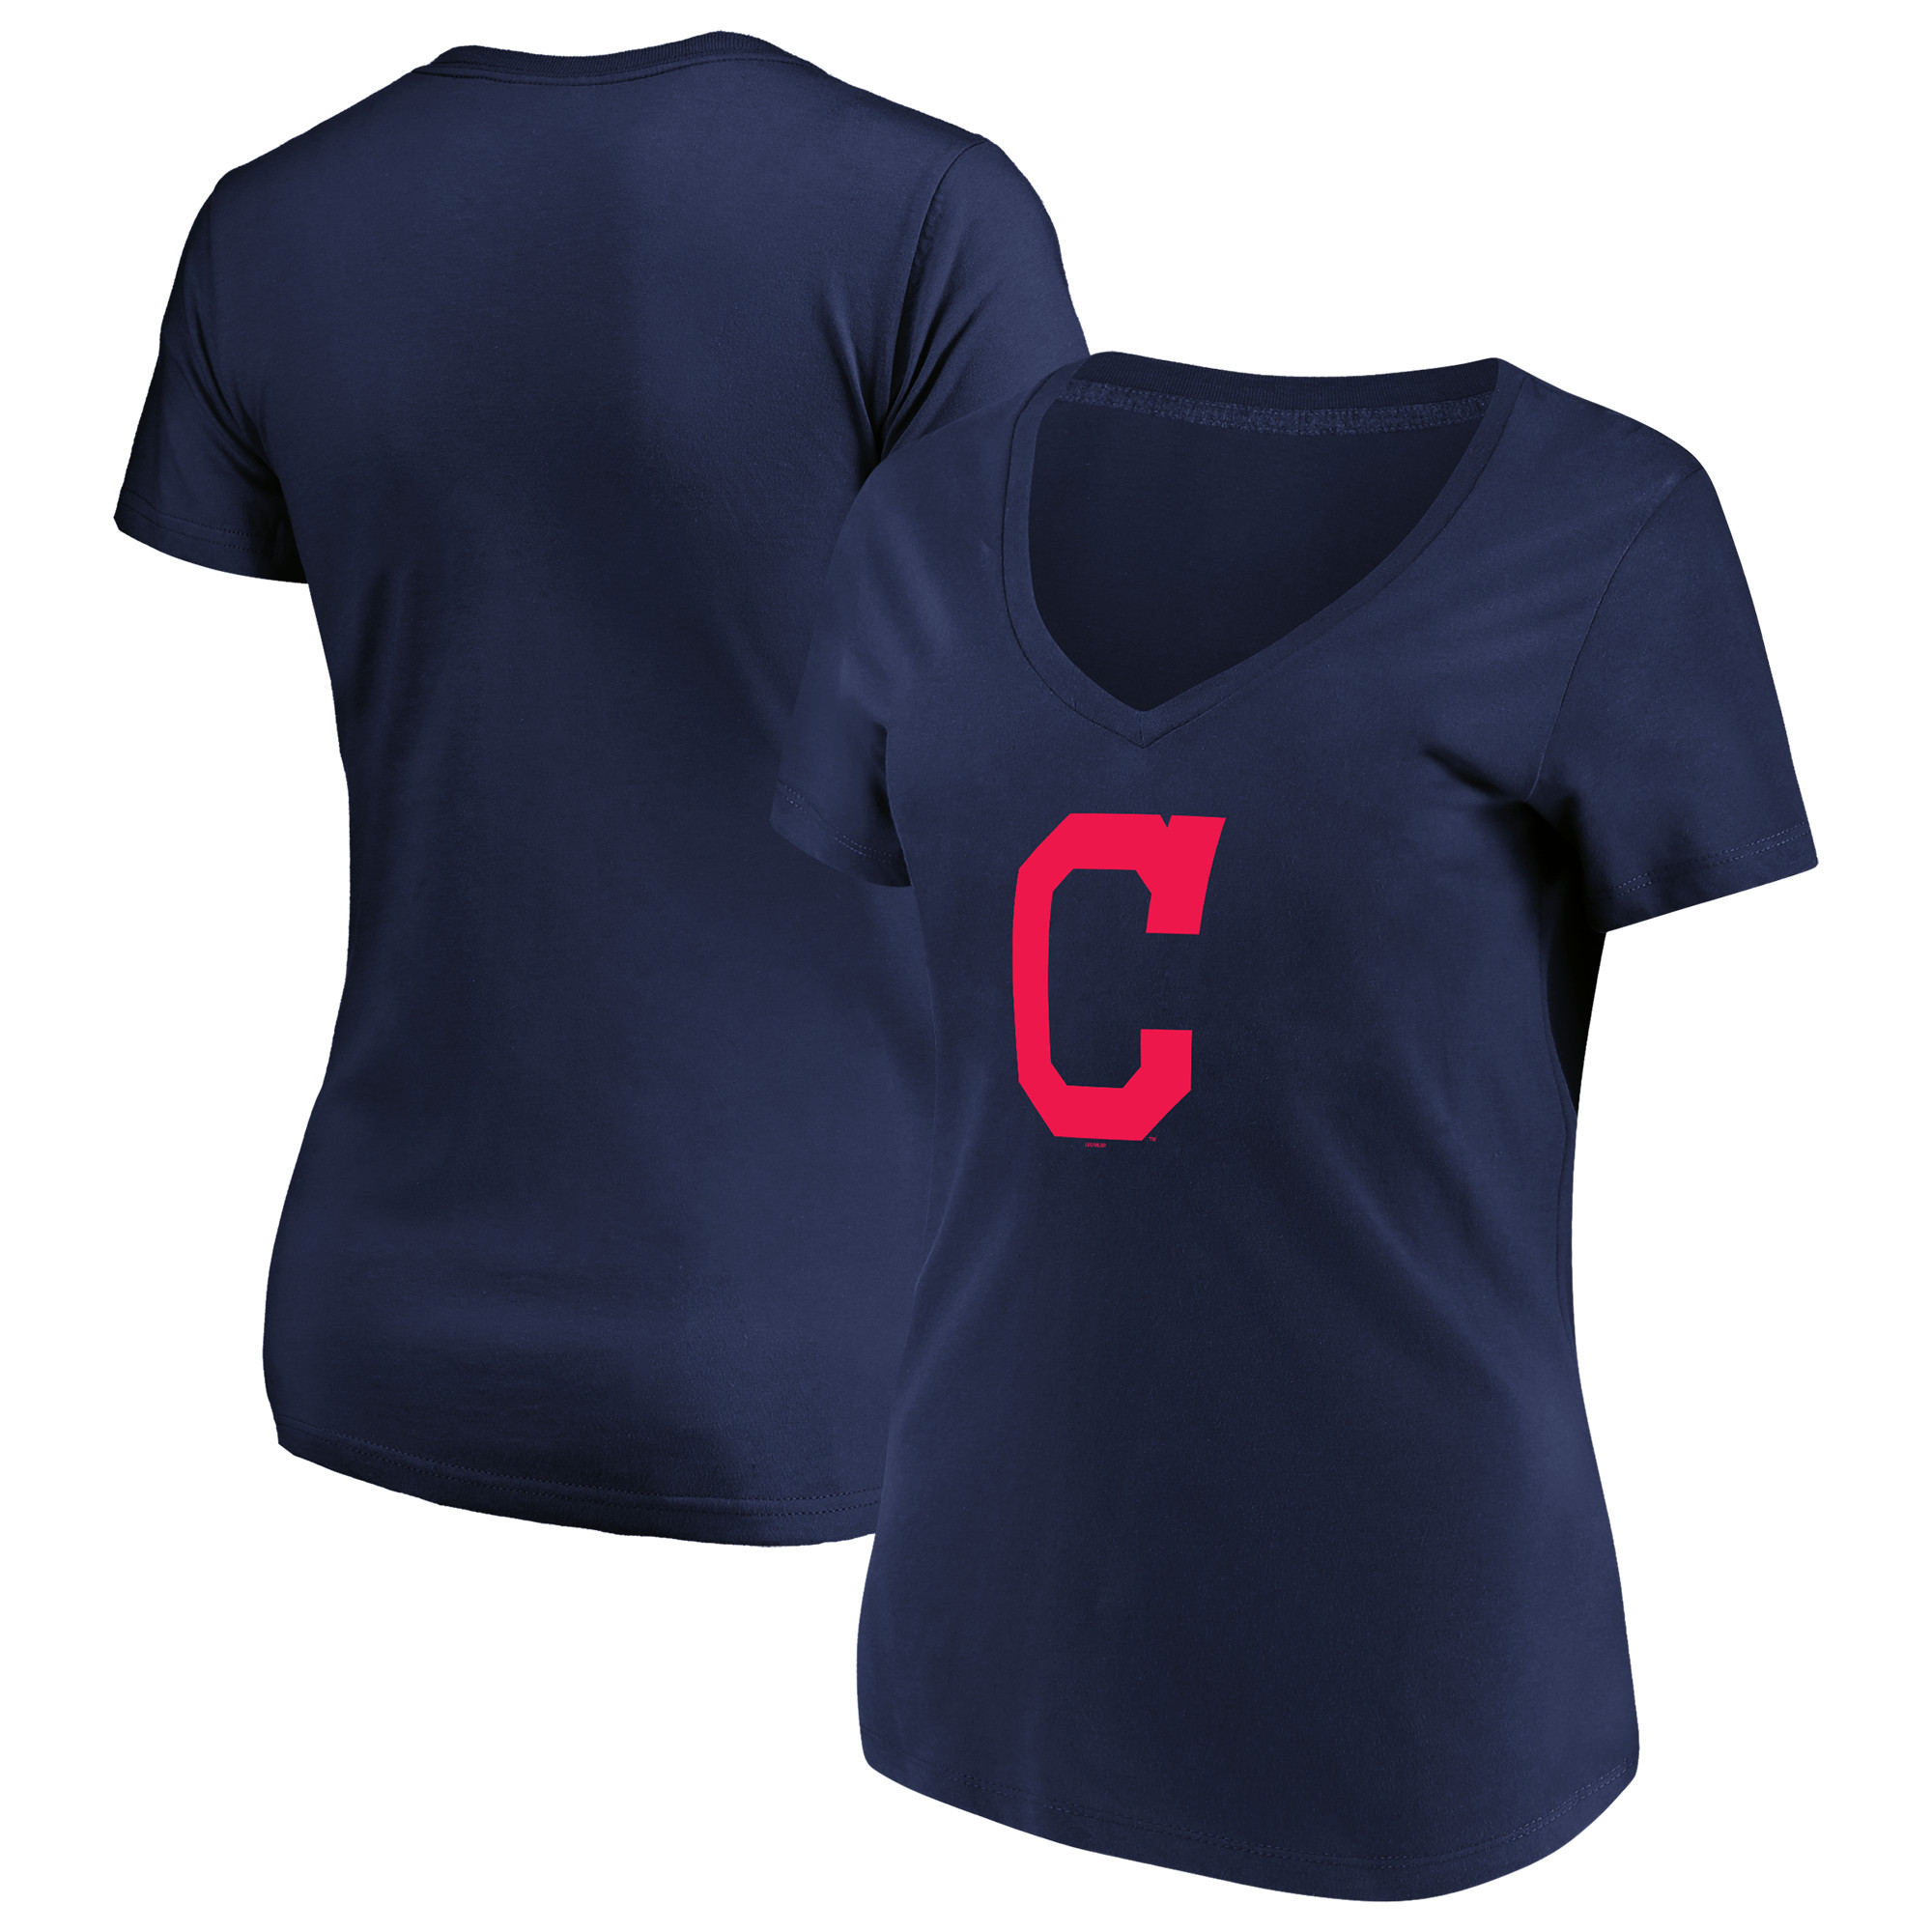 Women's Majestic Navy Cleveland Indians Top Ranking V-Neck T-Shirt